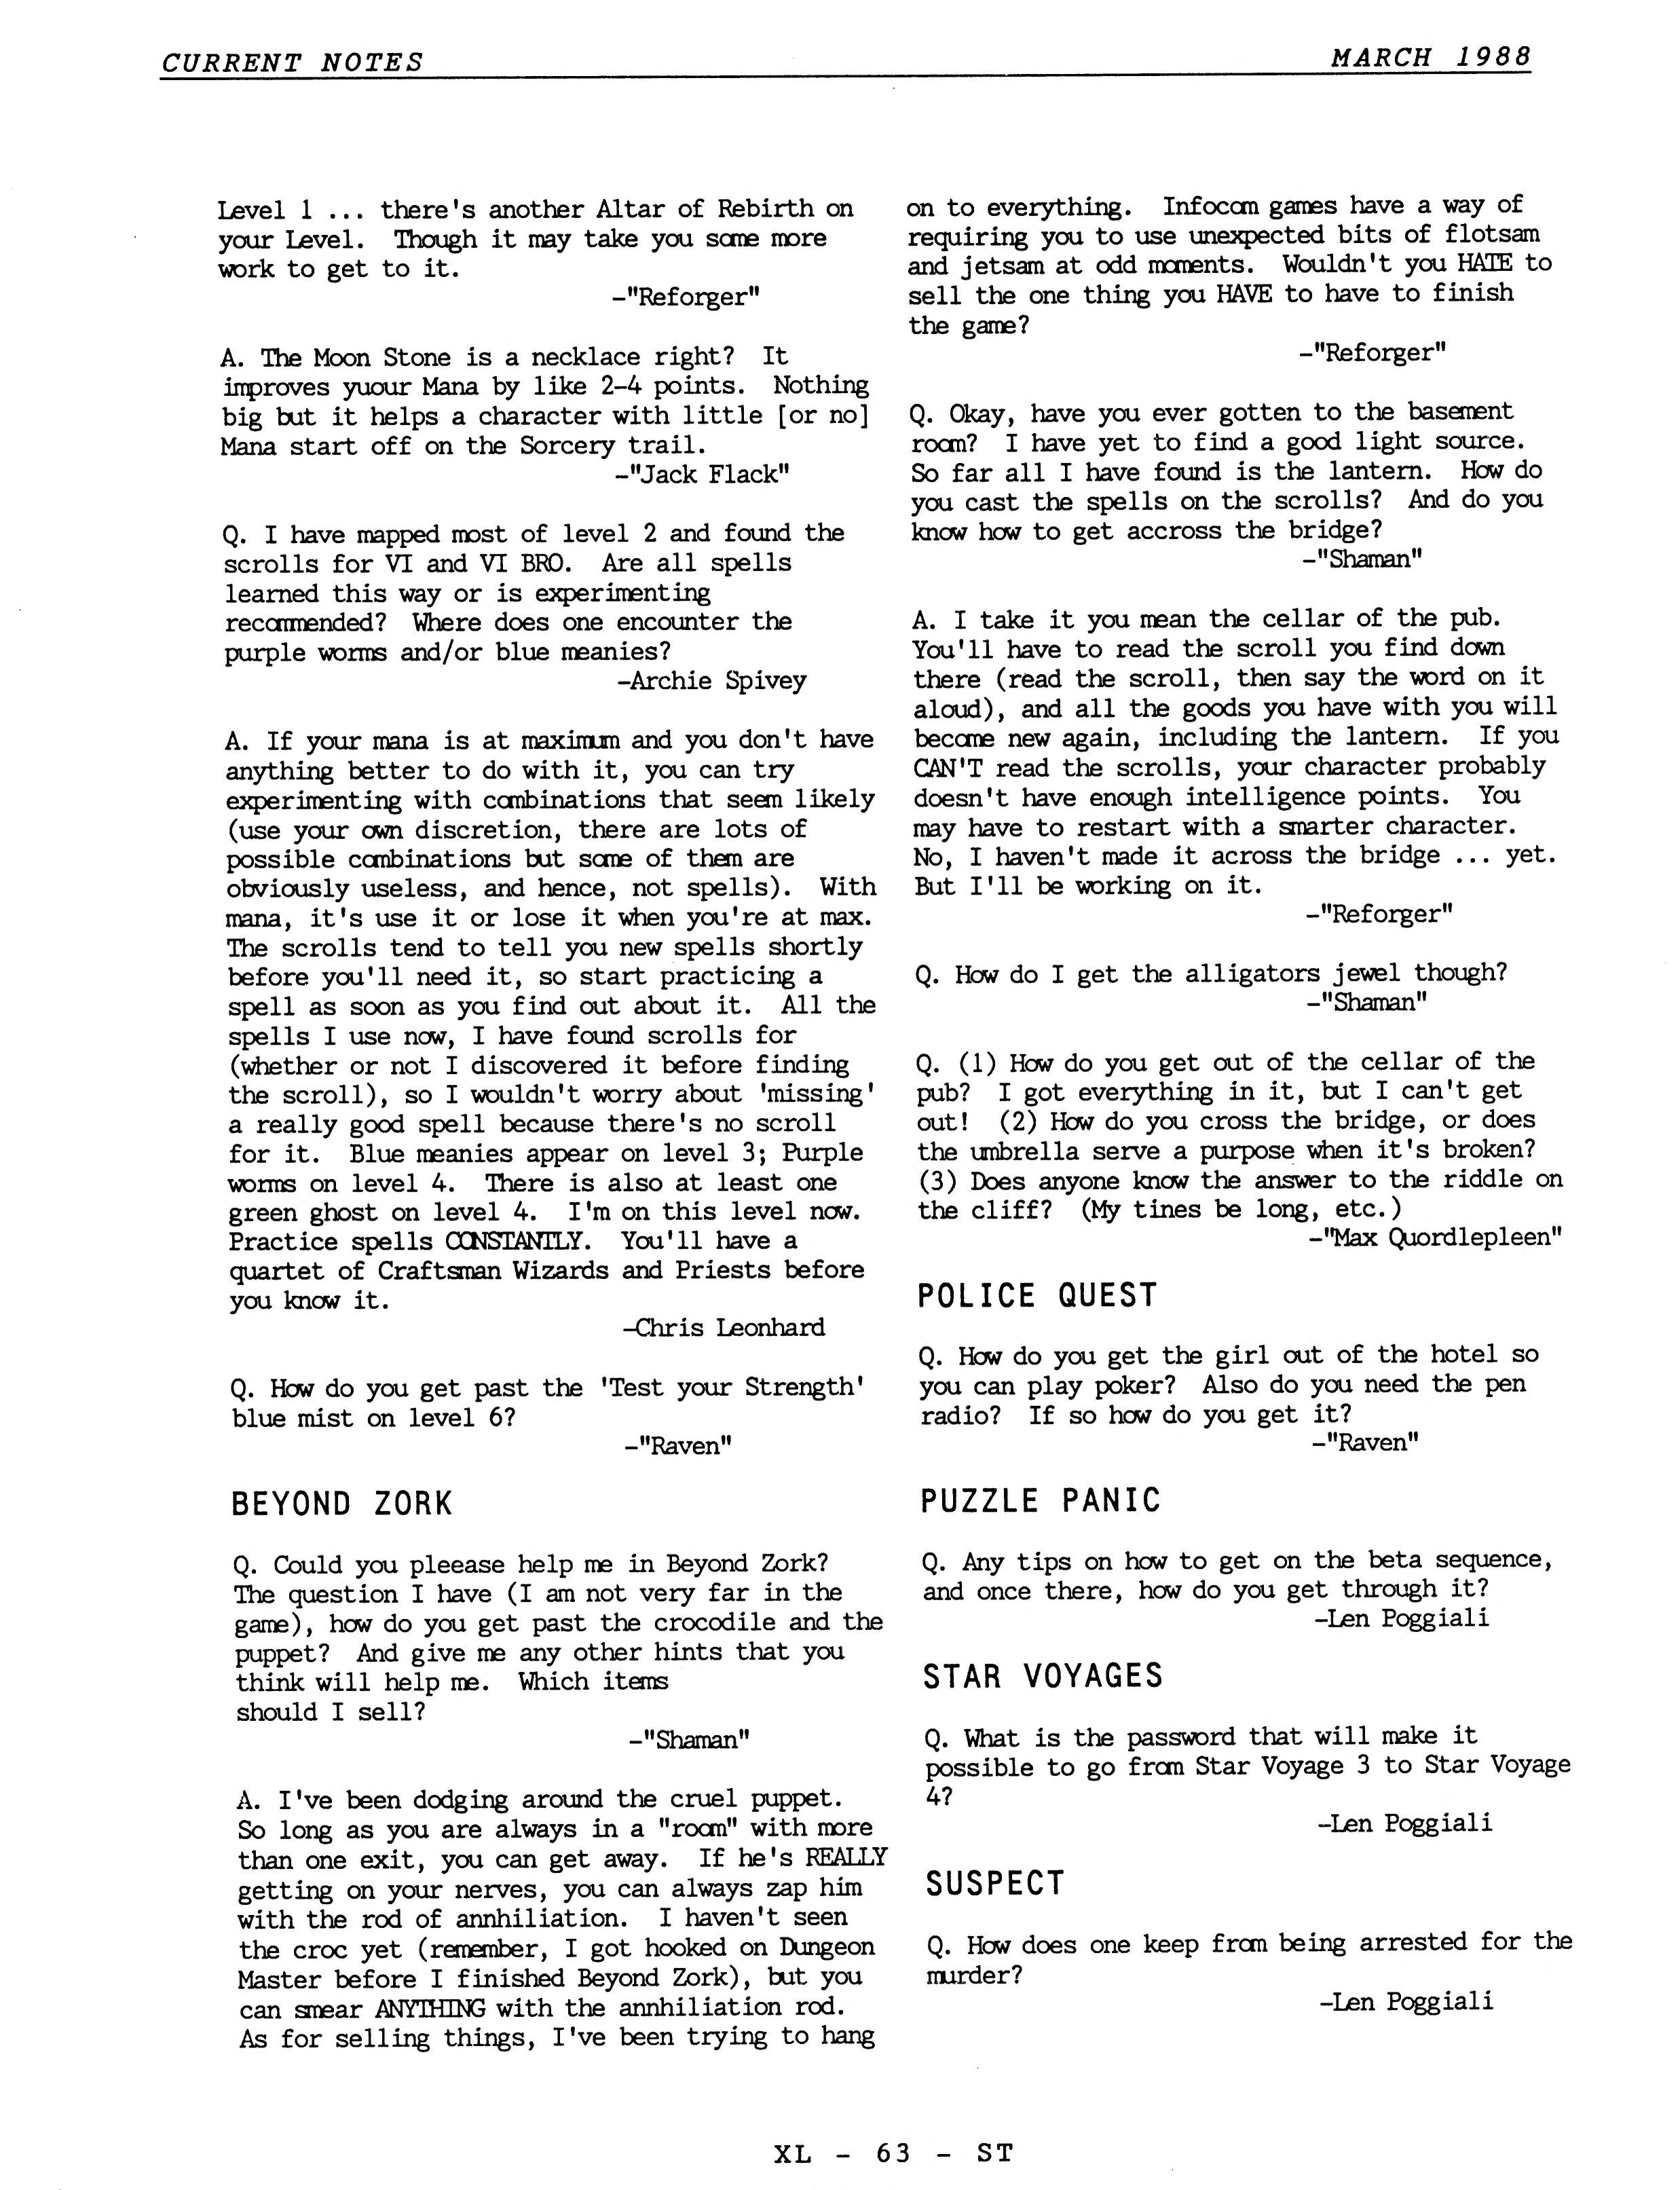 Dungeon Master Hints published in American magazine 'Current Notes', March 1988, Page 63